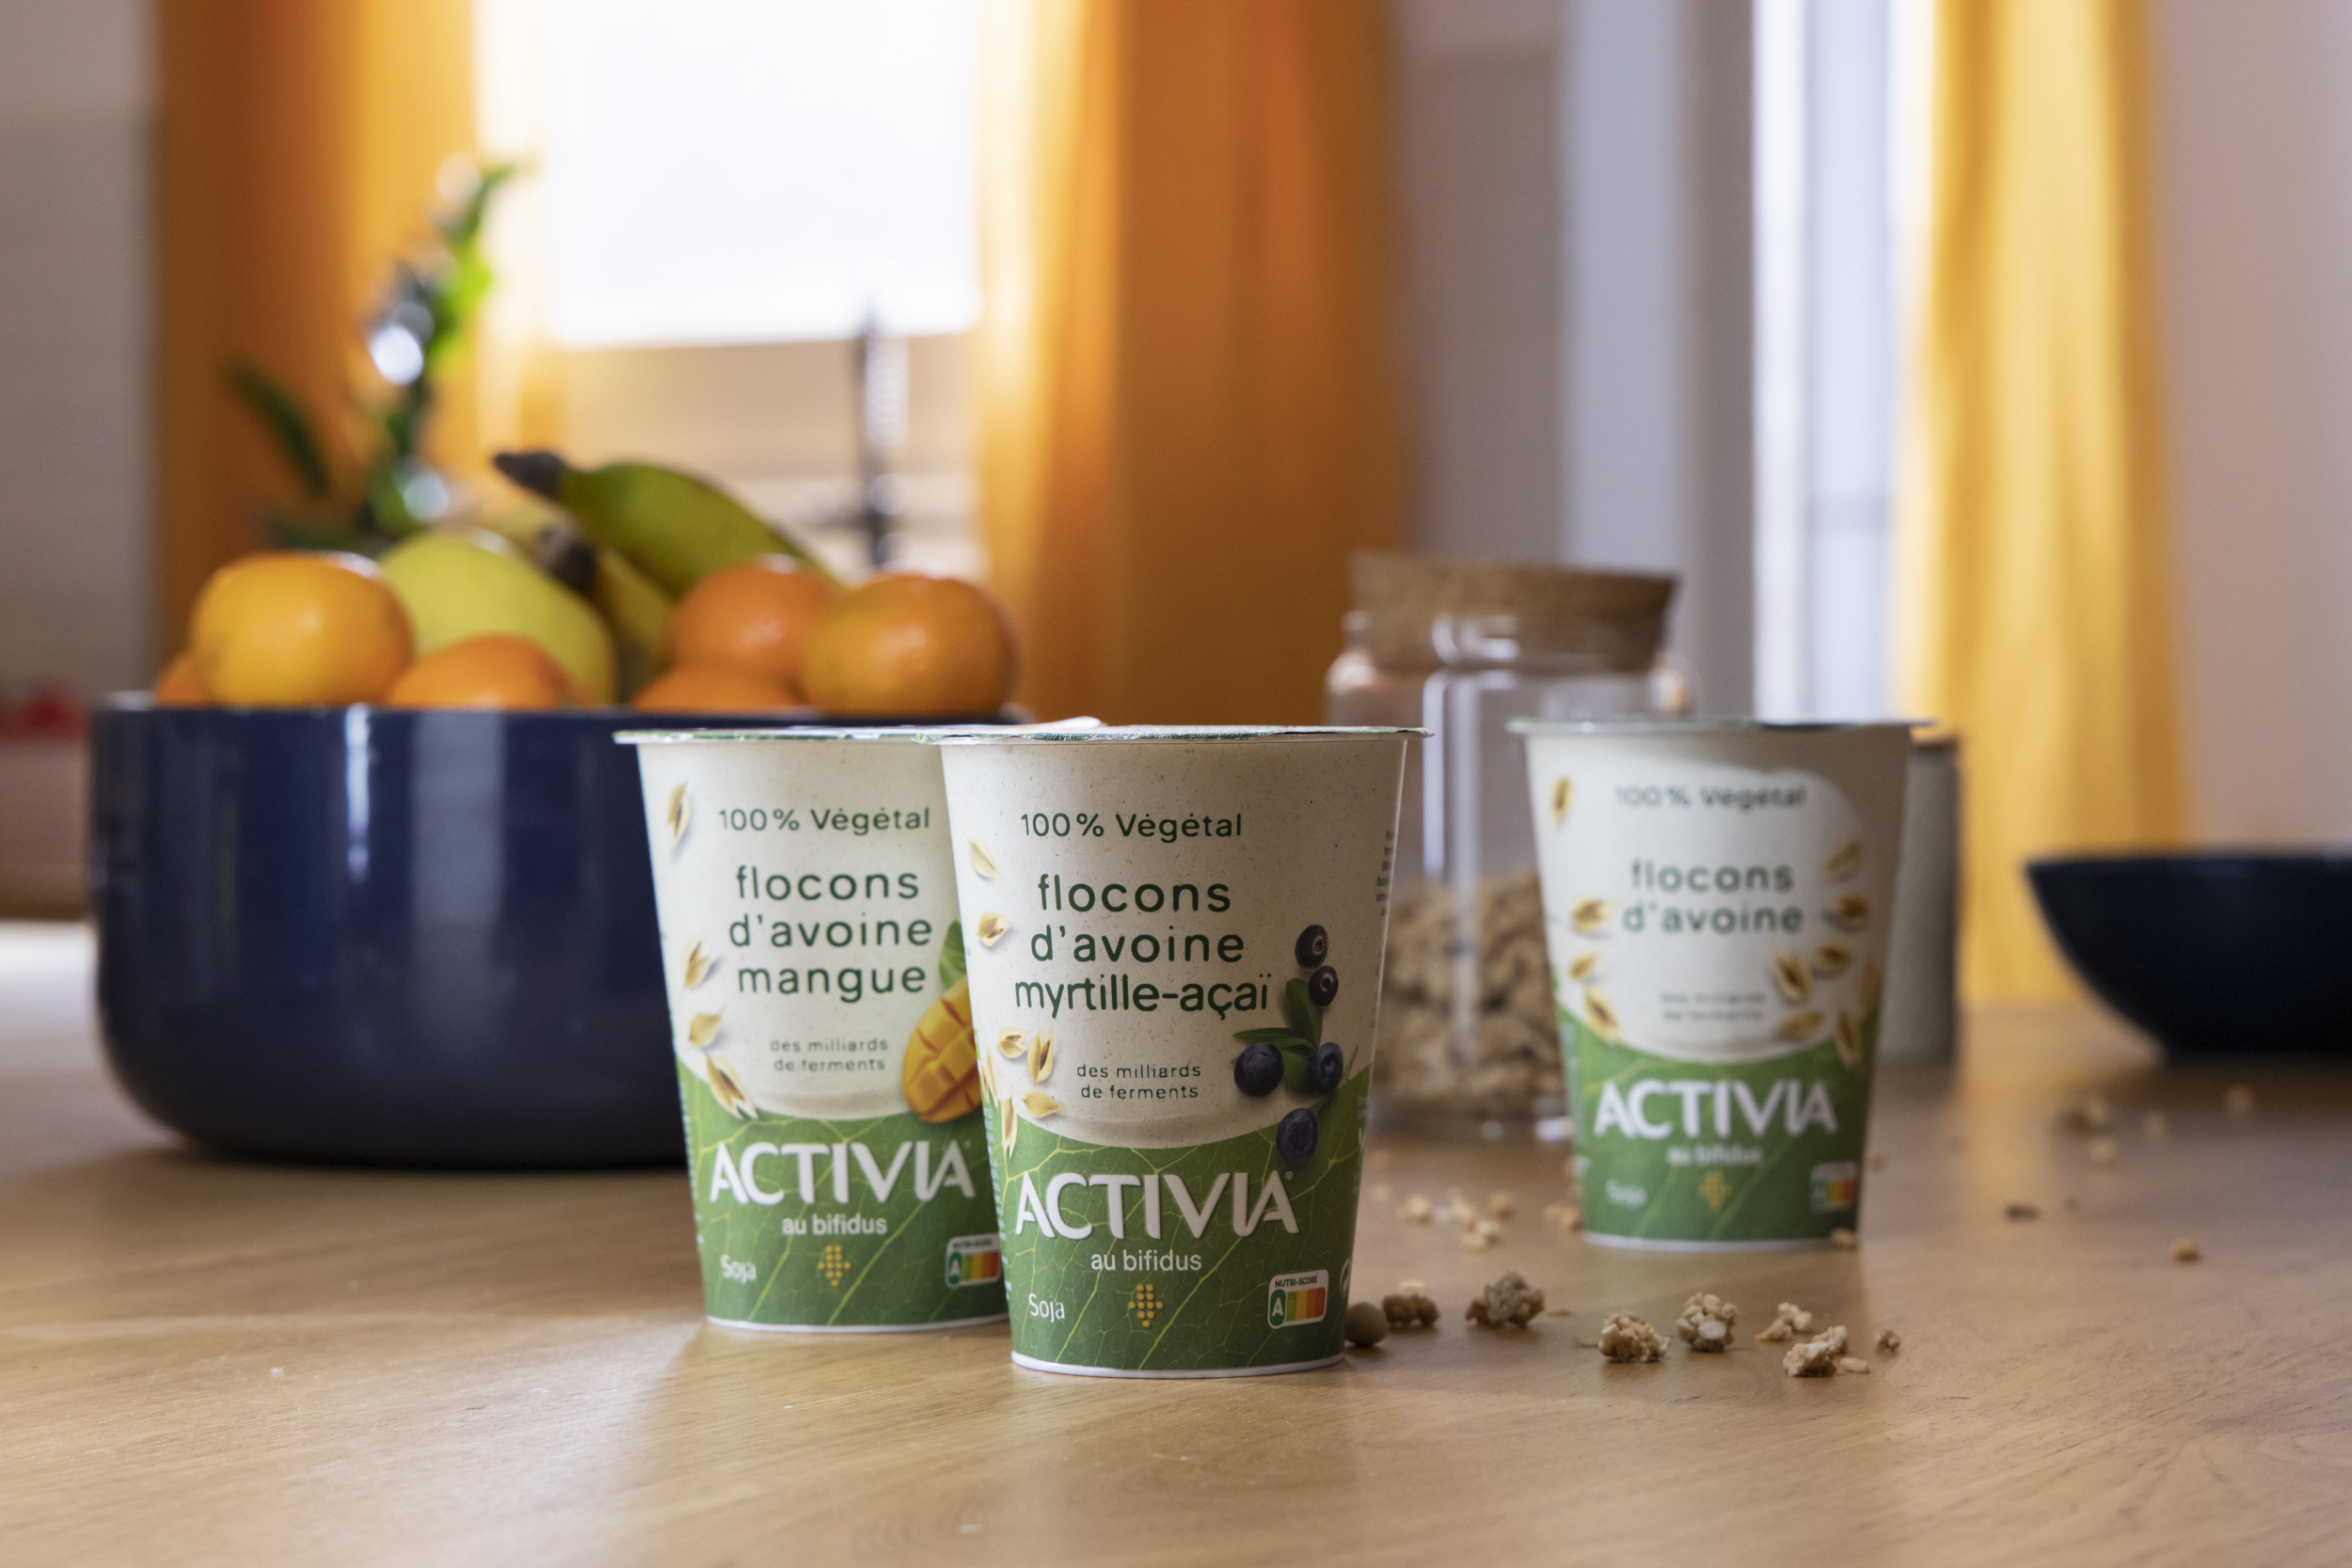 Meet the 100% plant-based Activia